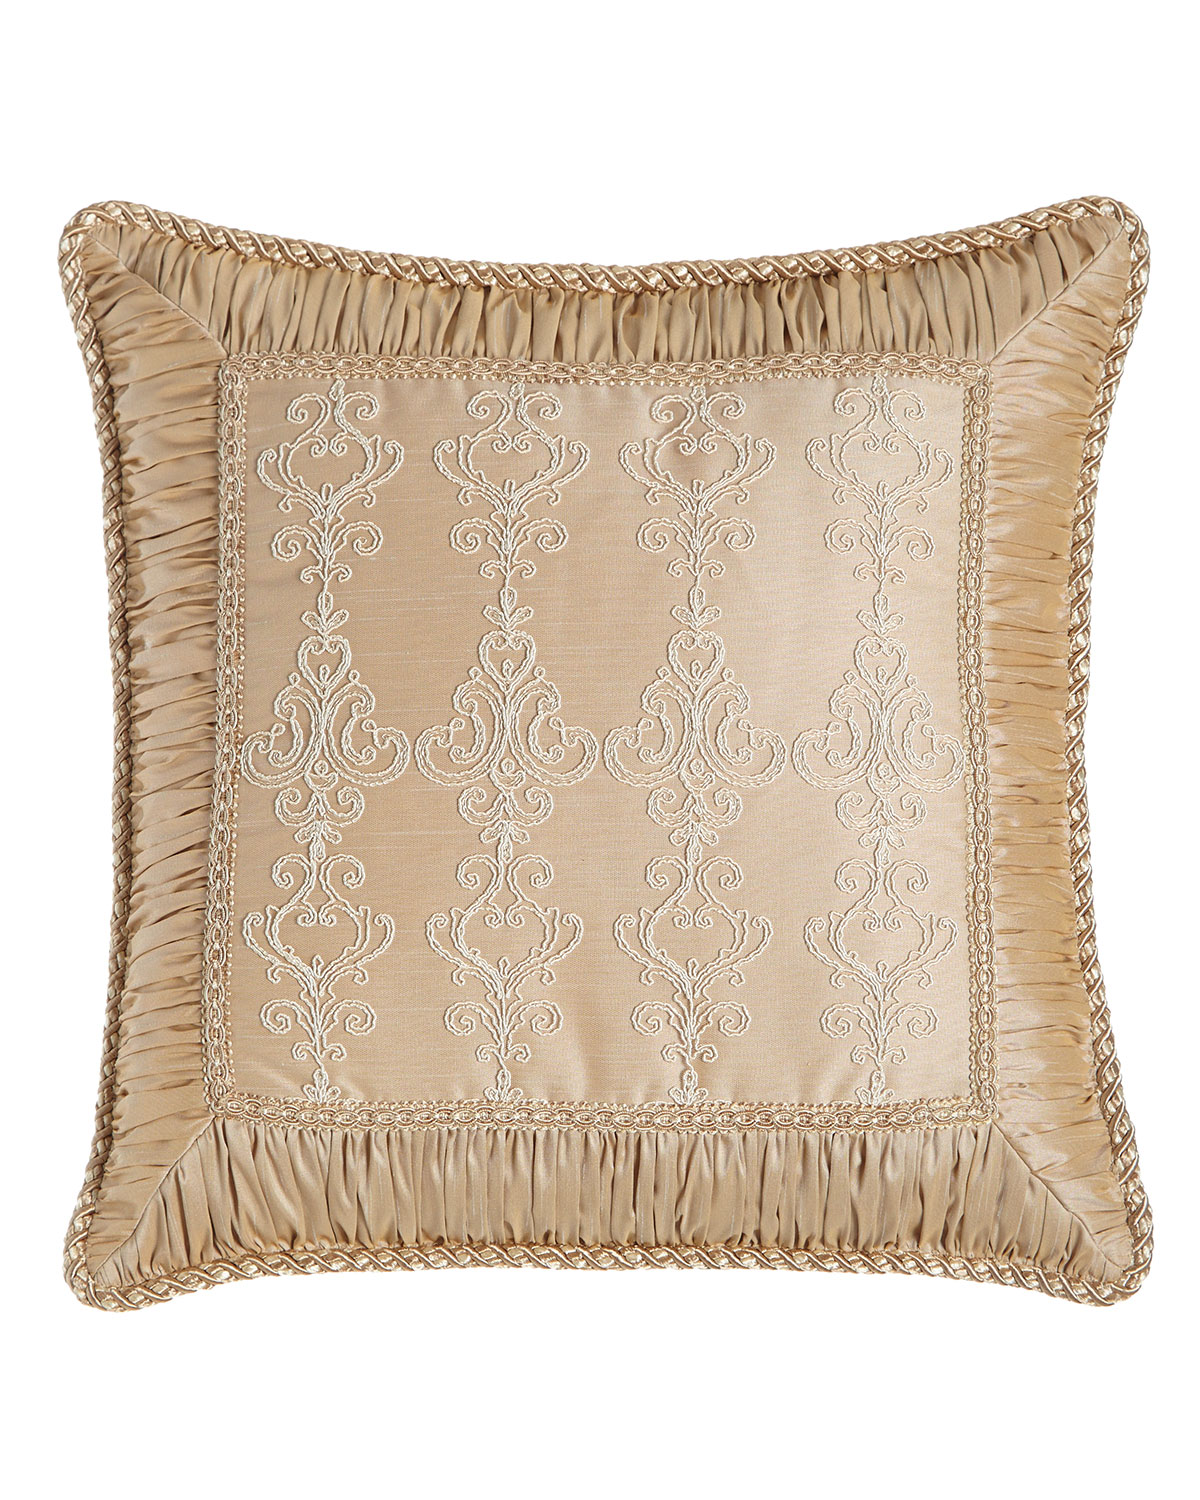 Sweet Dreams Elizabeth Lace Pillow With Ruched Border 19 Quot Sq